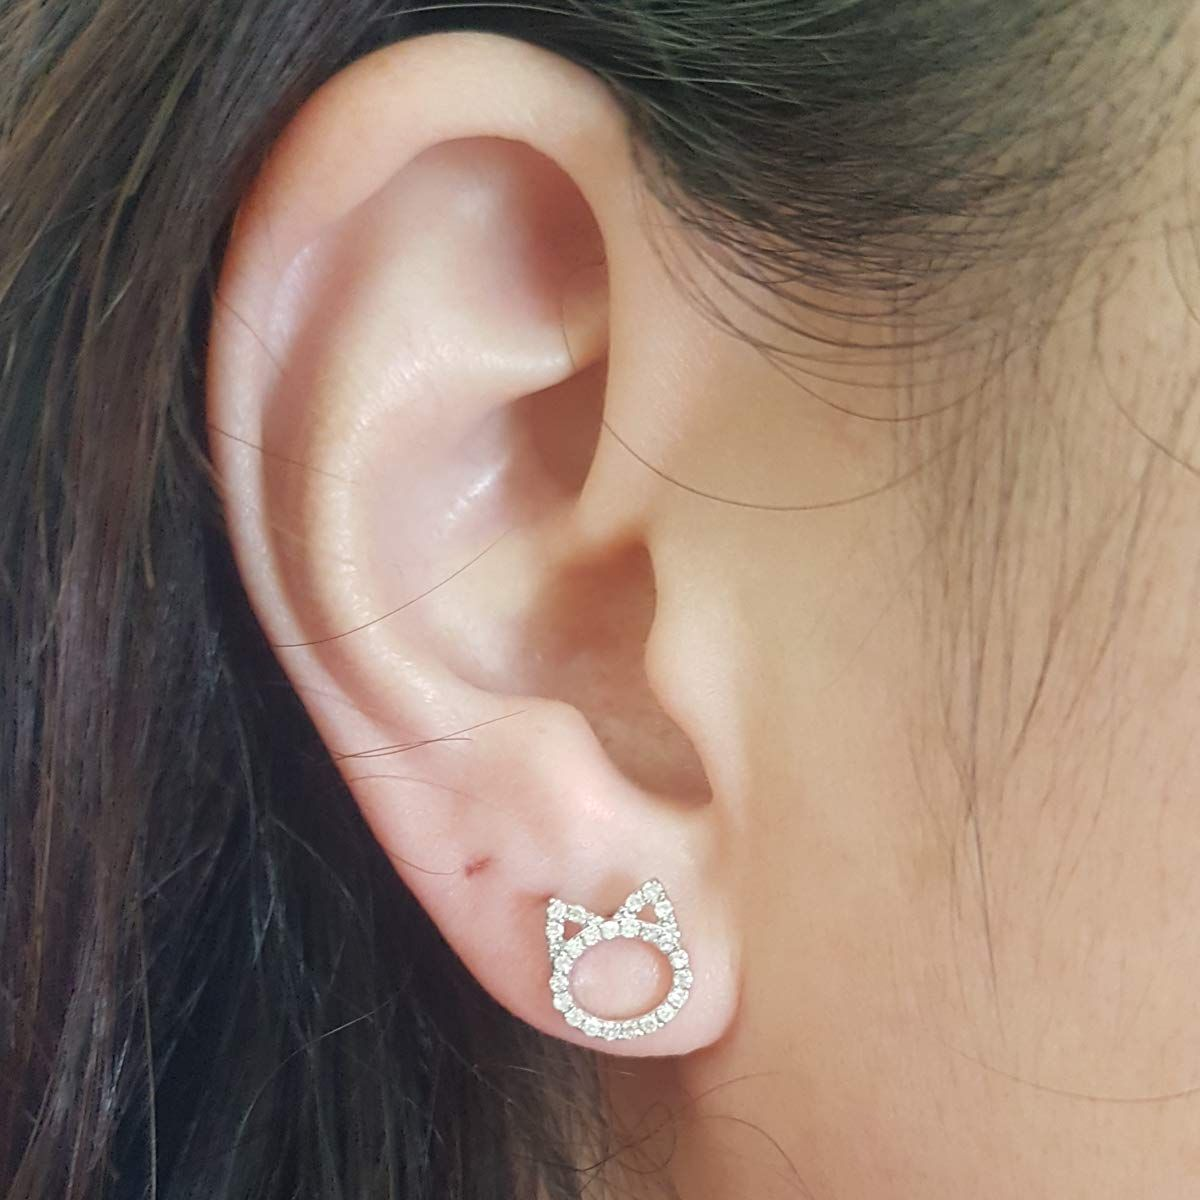 0 25 Carat Ctw Round White Diamond Ladies Cat Stud Earrings 1 4 Ct You Can Find More Details By Visiting The Im In 2020 Cat Earrings Studs Stud Earrings Earrings